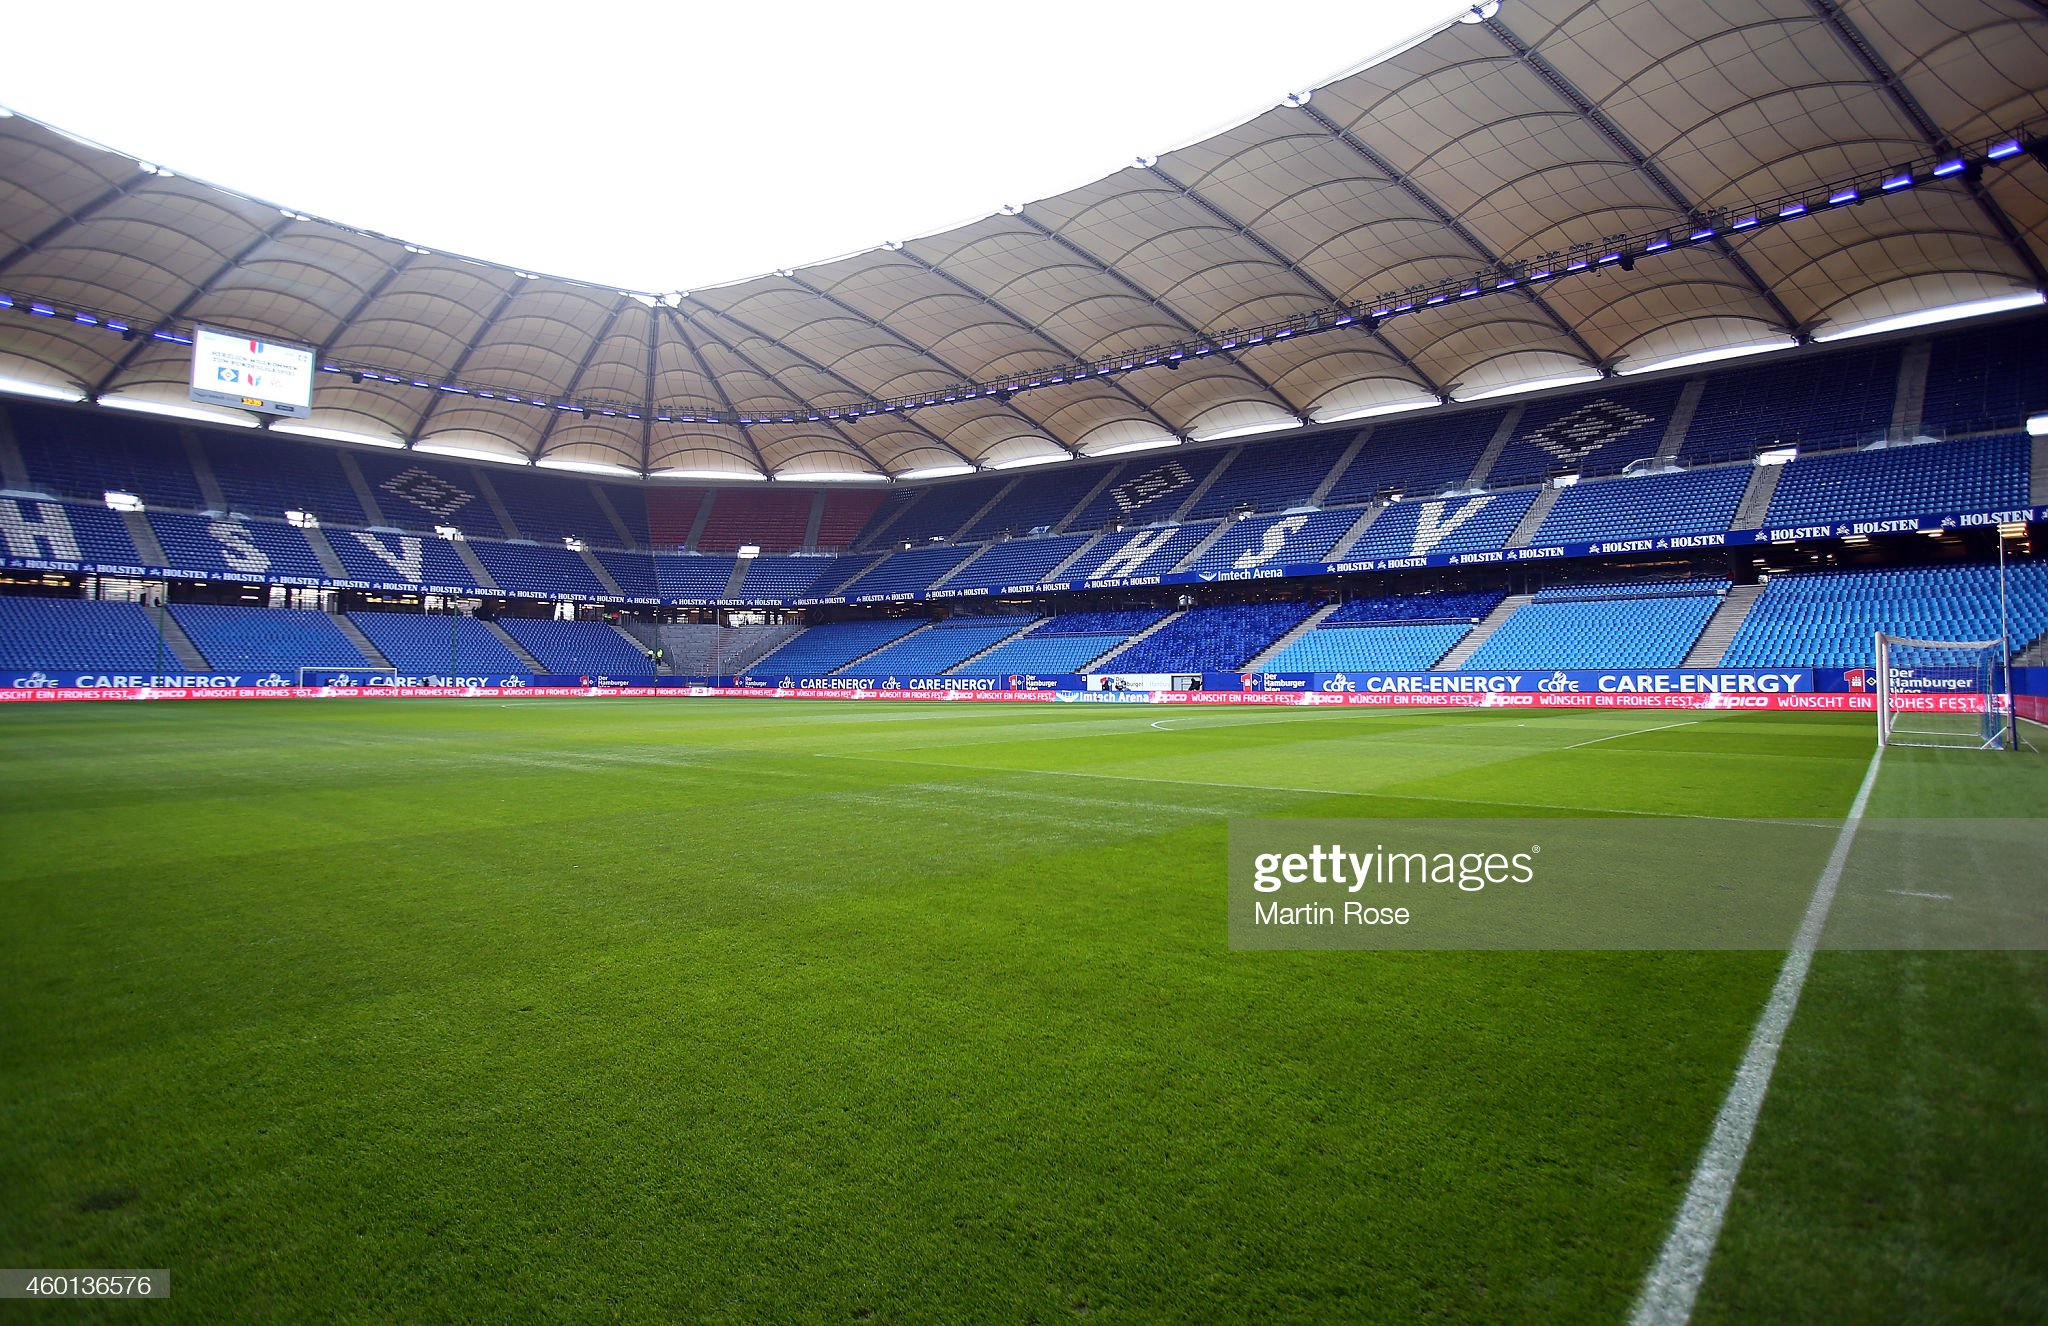 Germany vs Romania Preview, prediction and odds